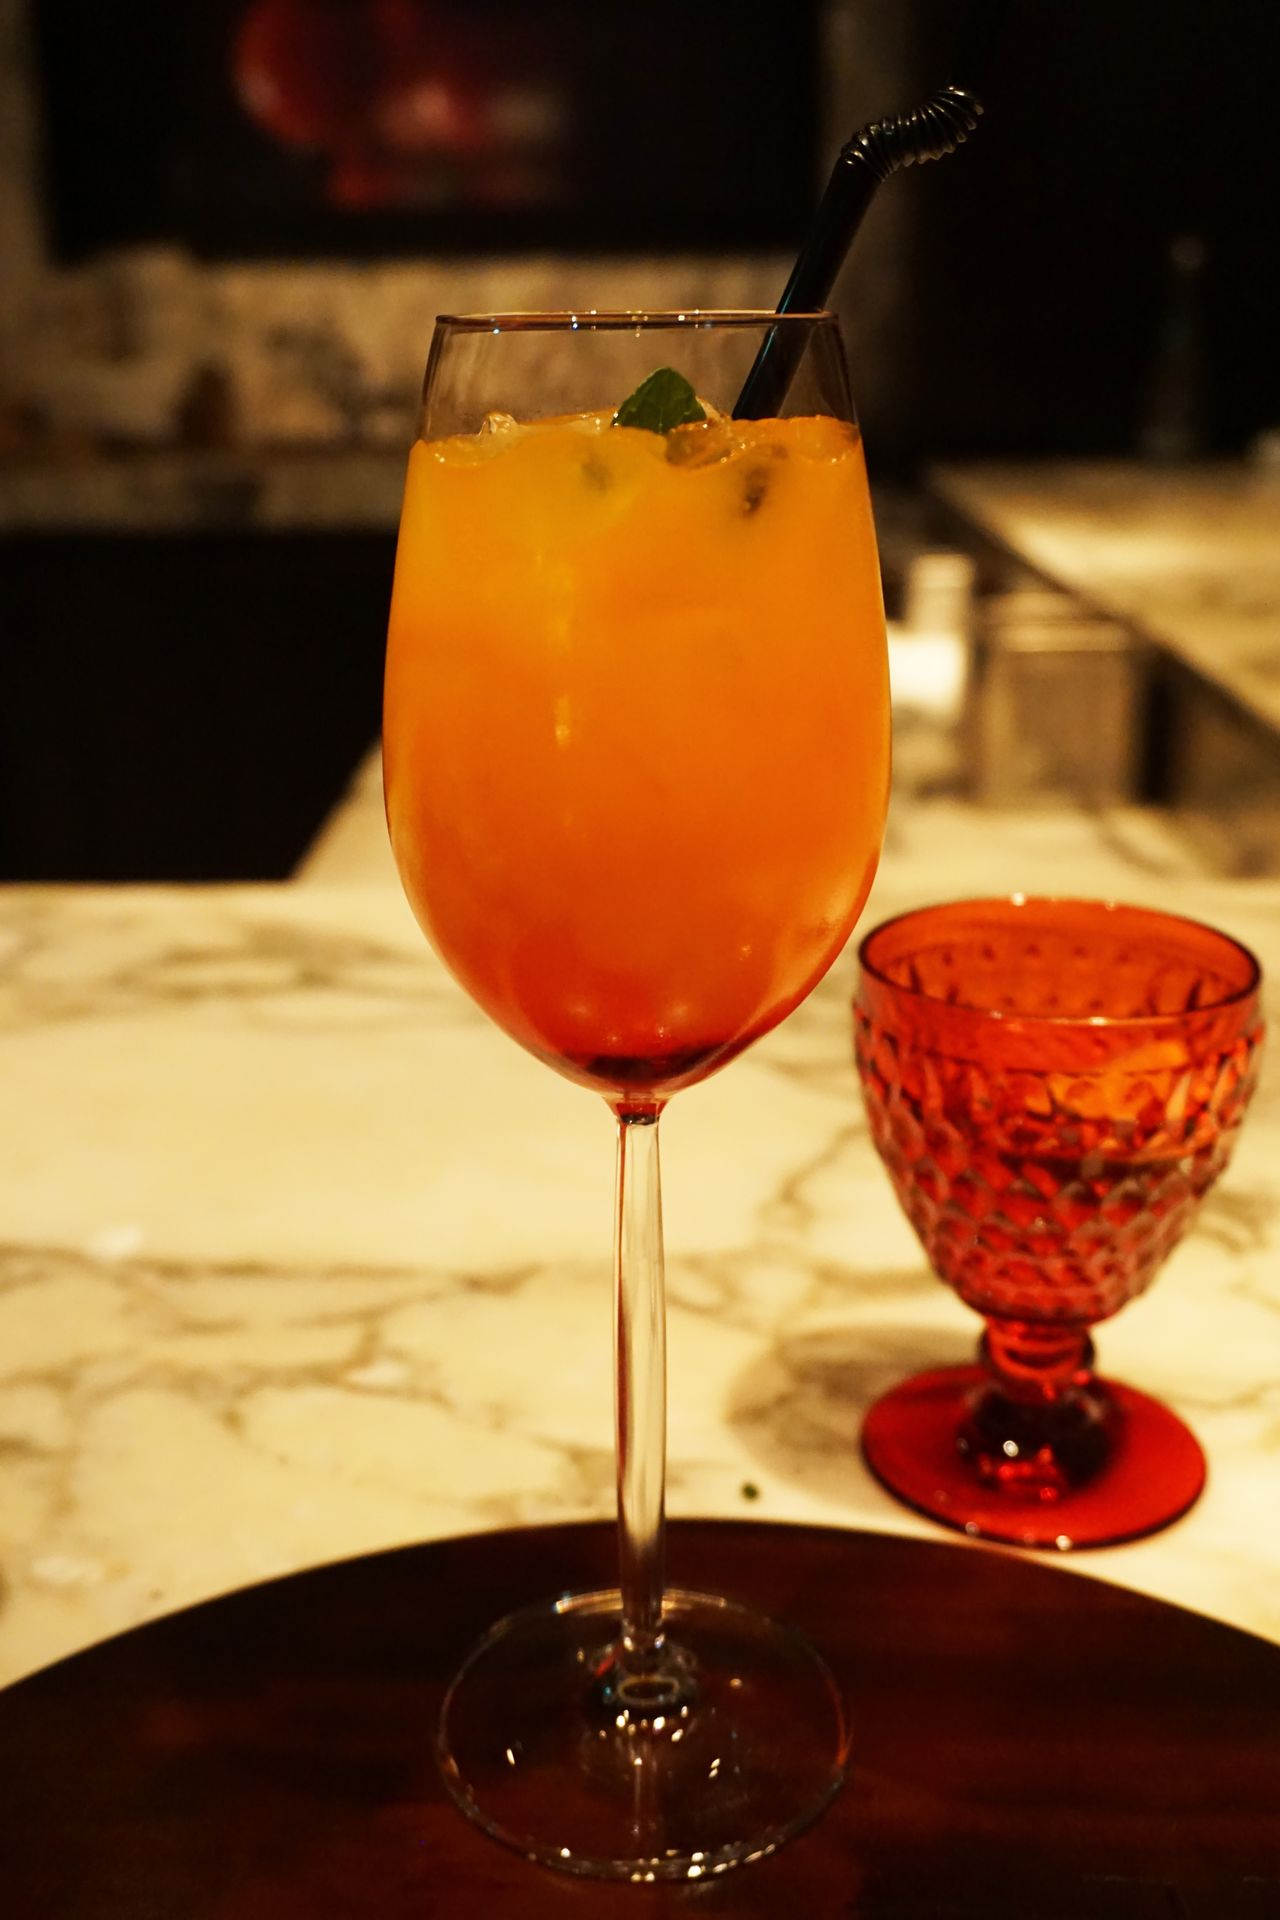 Alcohol Cocktail Drink Drinking Glass Juice Mandarin Oriental Tokyo Red Refreshment Restaurant The Pizza Bar On 38th Wineglass ジュース マンダリンオリエンタル東京 2016